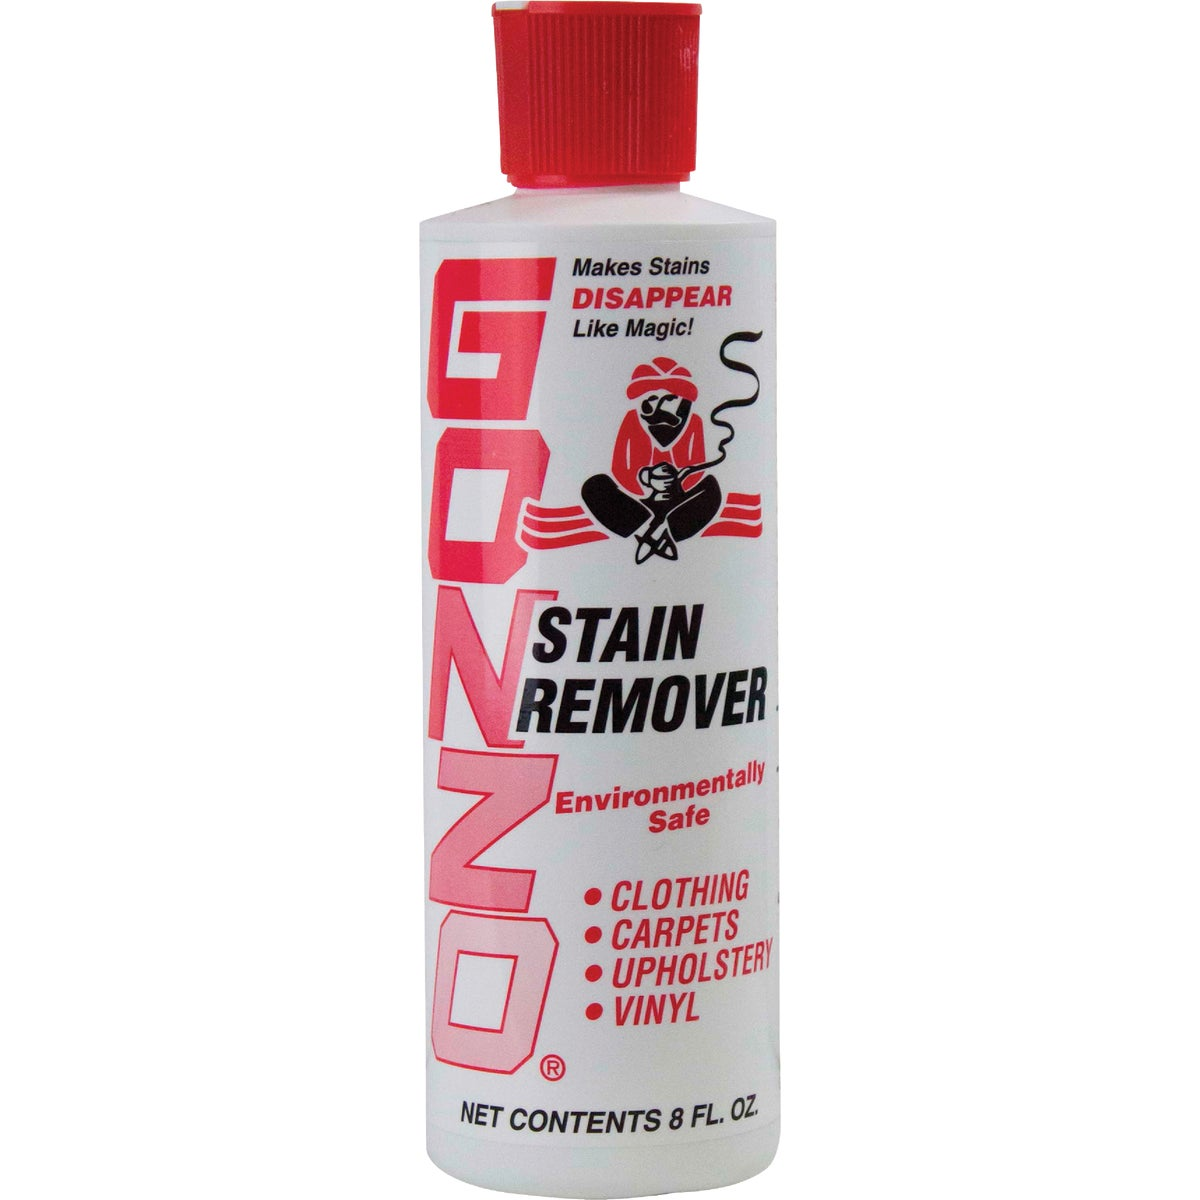 8OZ STAIN REMOVER - 1007 by Weiman Products Llc